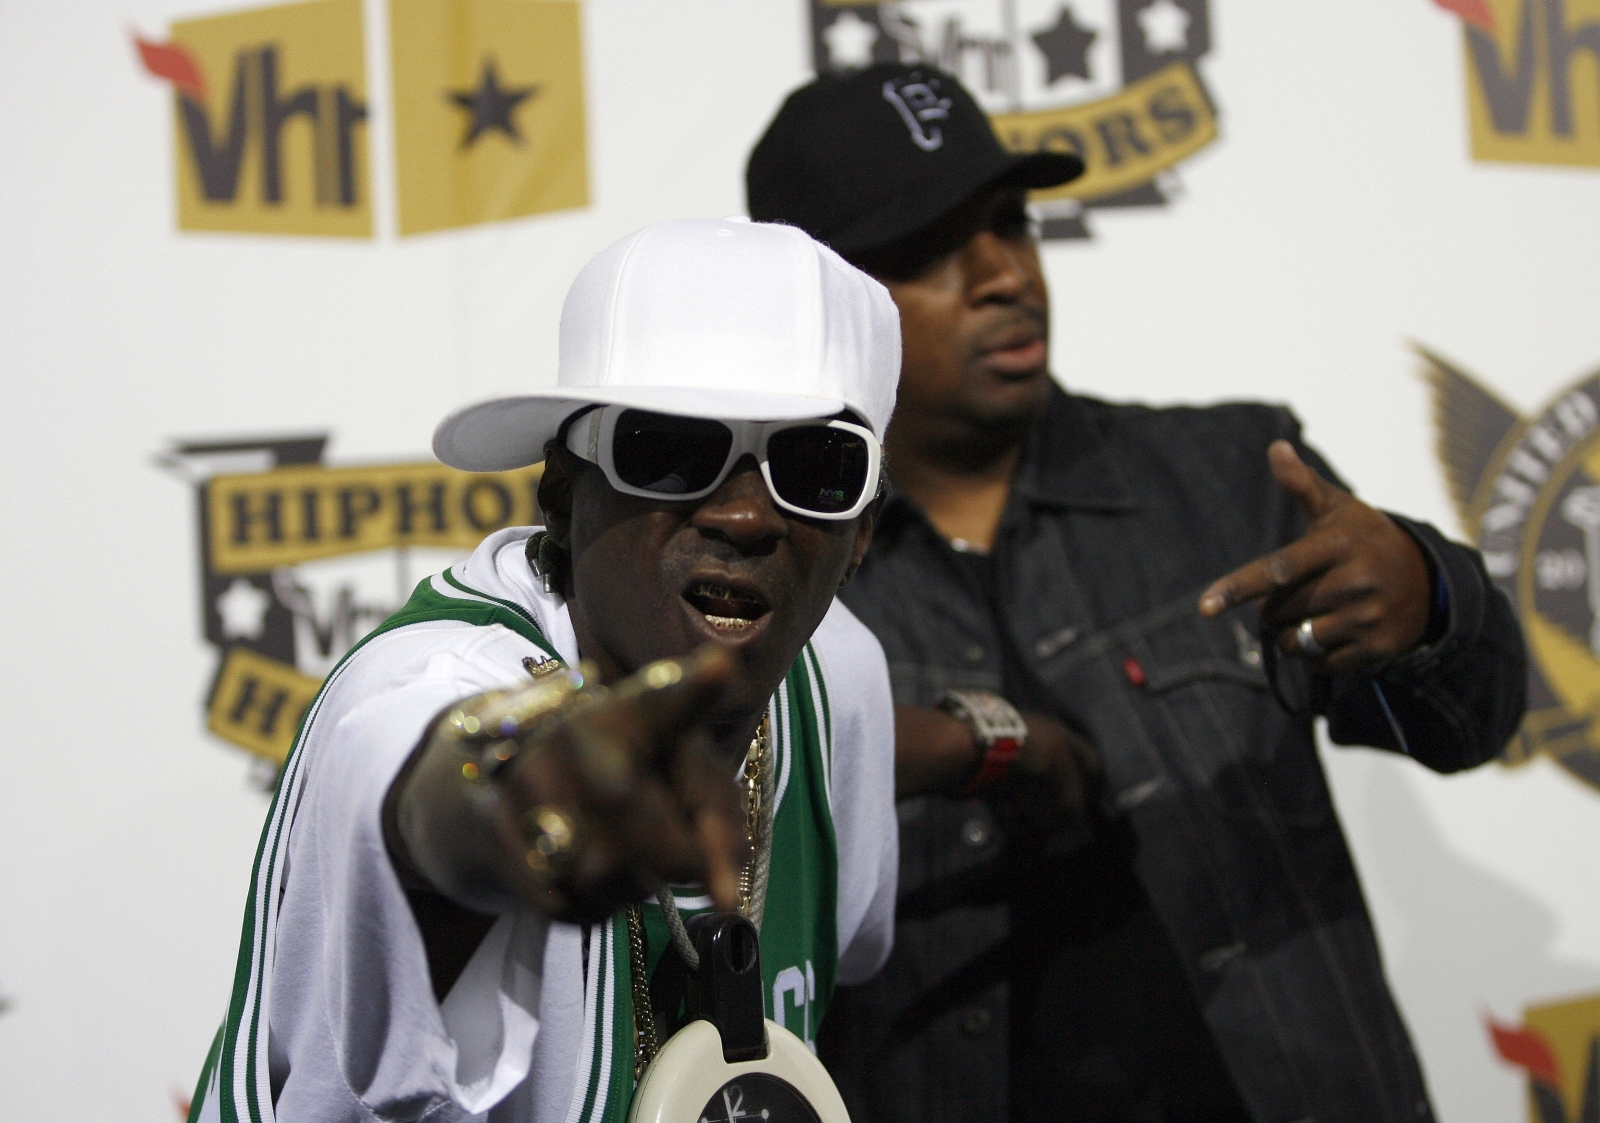 Flavor Flav Gets Viciously Attacked In Las Vegas Casino